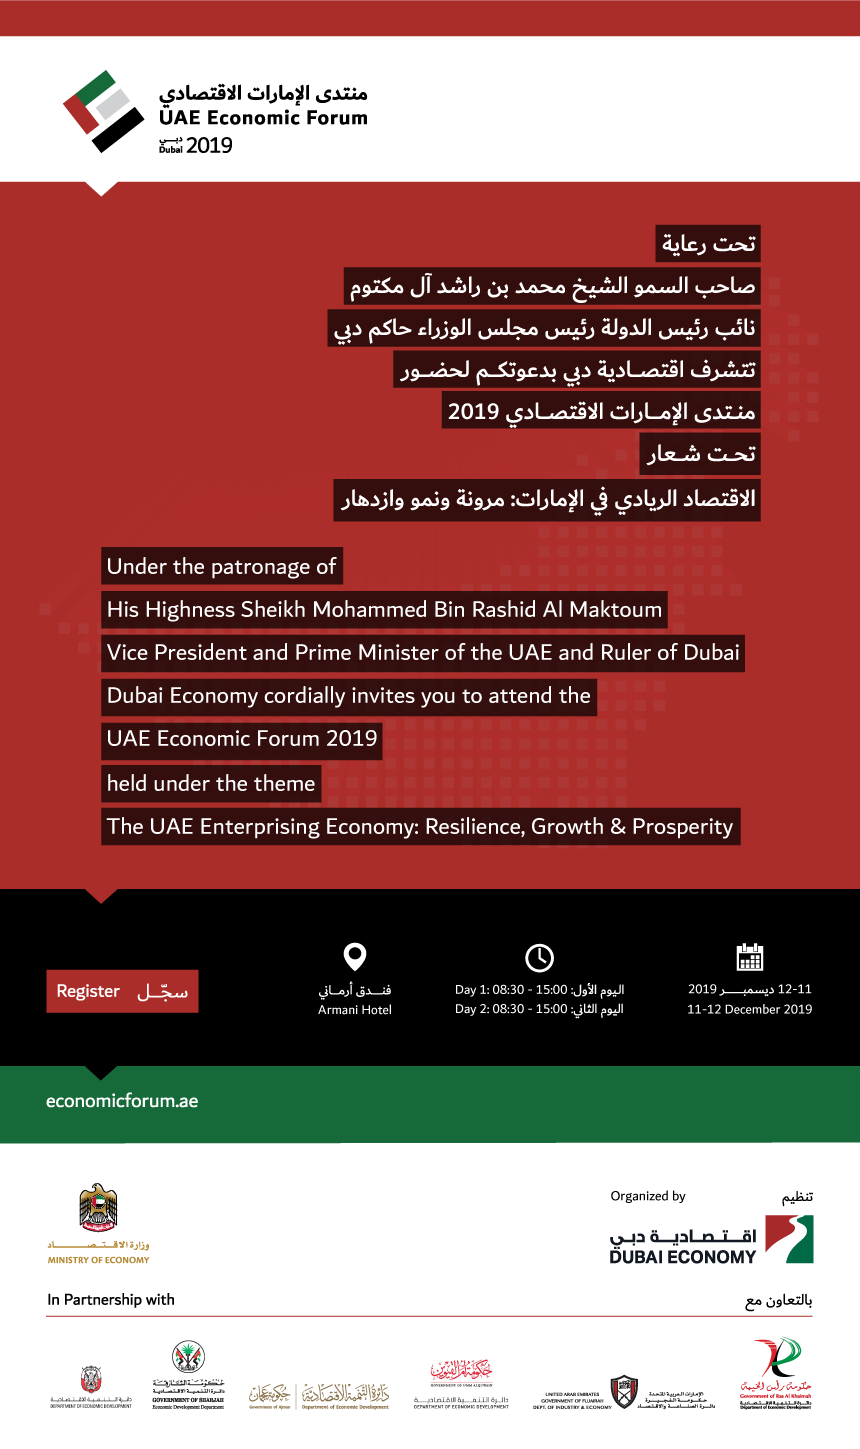 https://campaign-image.com/zohocampaigns/608925000000164190_zc_v25_final_uae_economic_forum_2019_invite.png